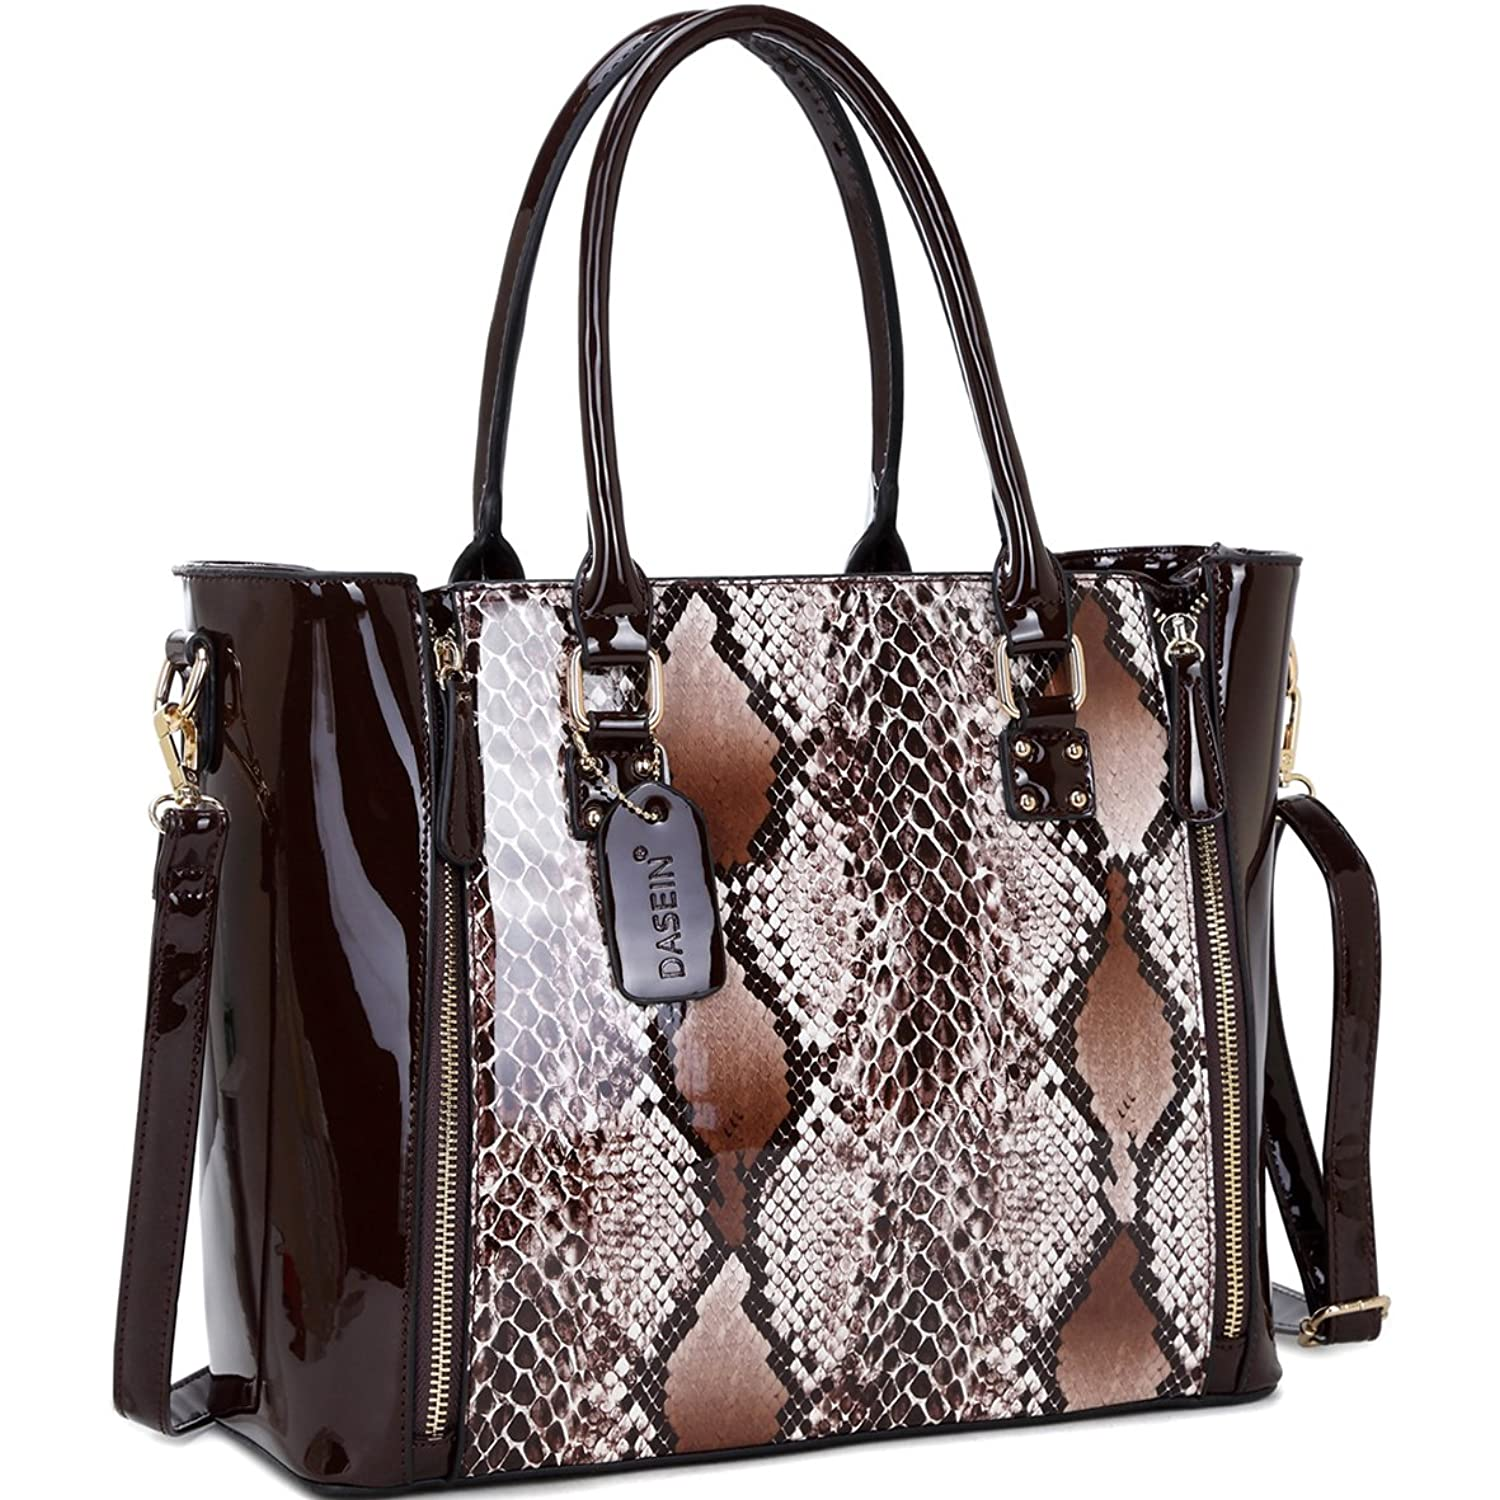 Dasein Faux Patent Leather Zipper Sides with Snakeskin Detail Satchel Shoulder Bag